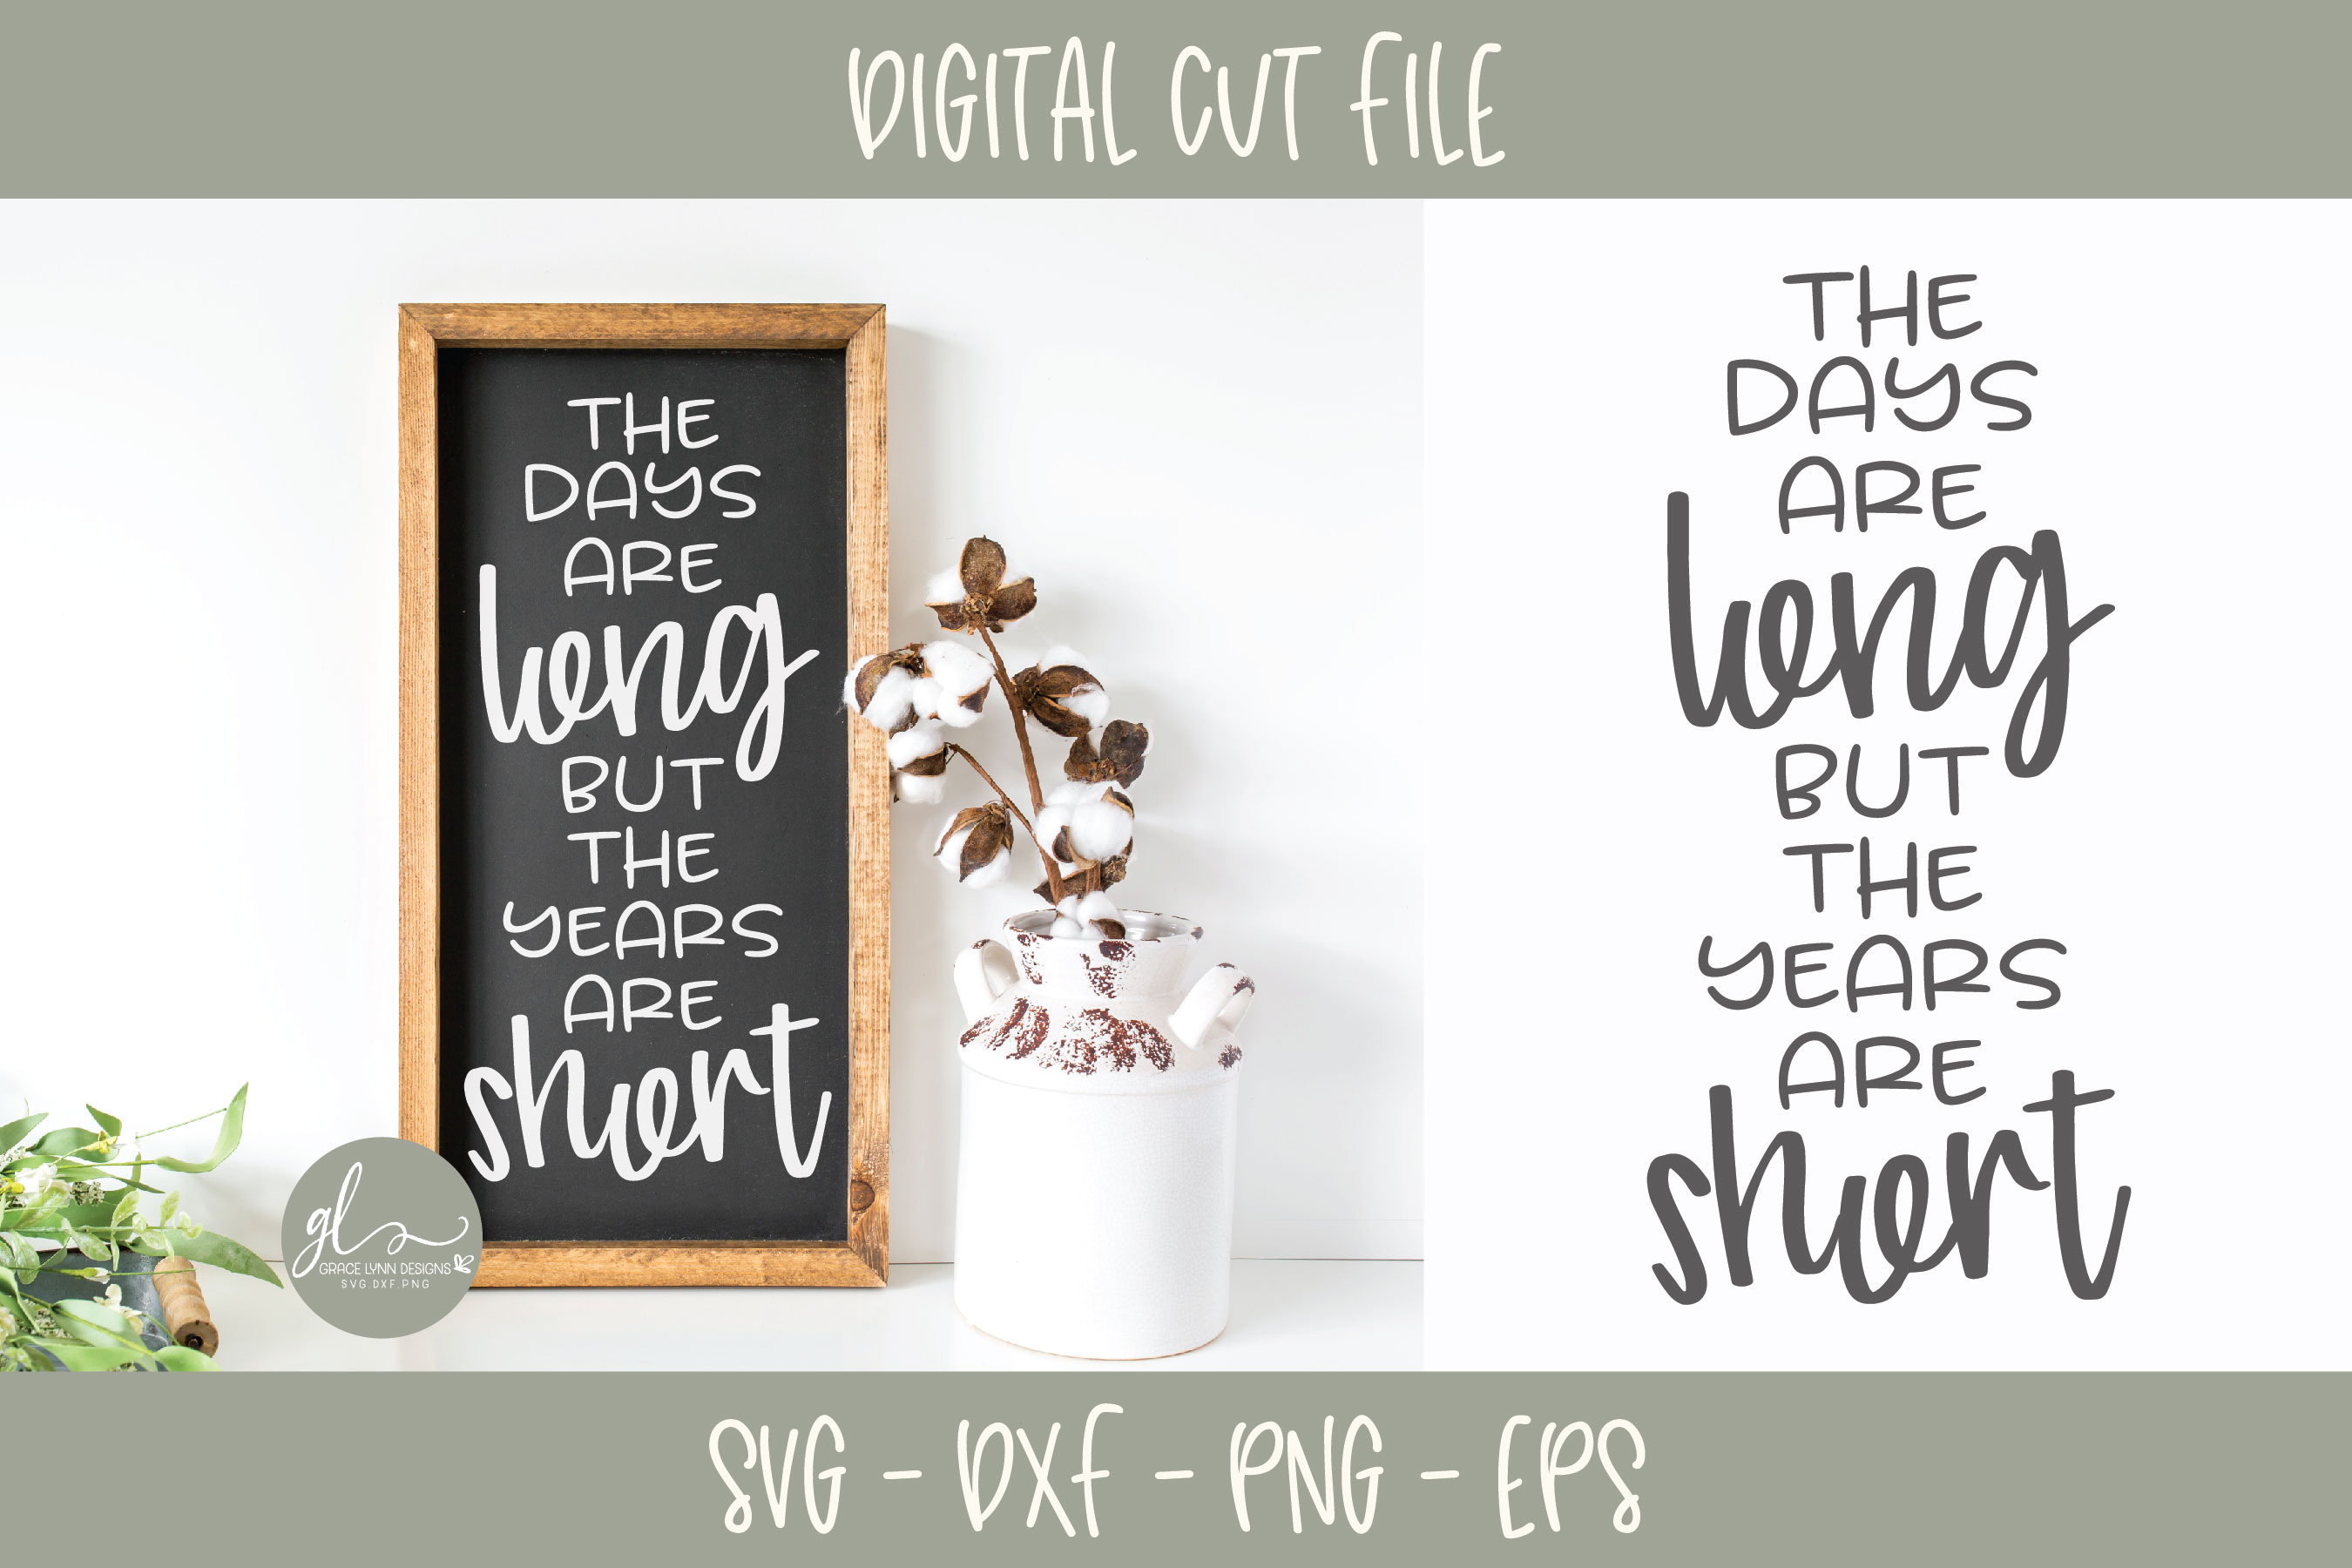 The Days Are Long But The Years Are Short - SVG example image 1